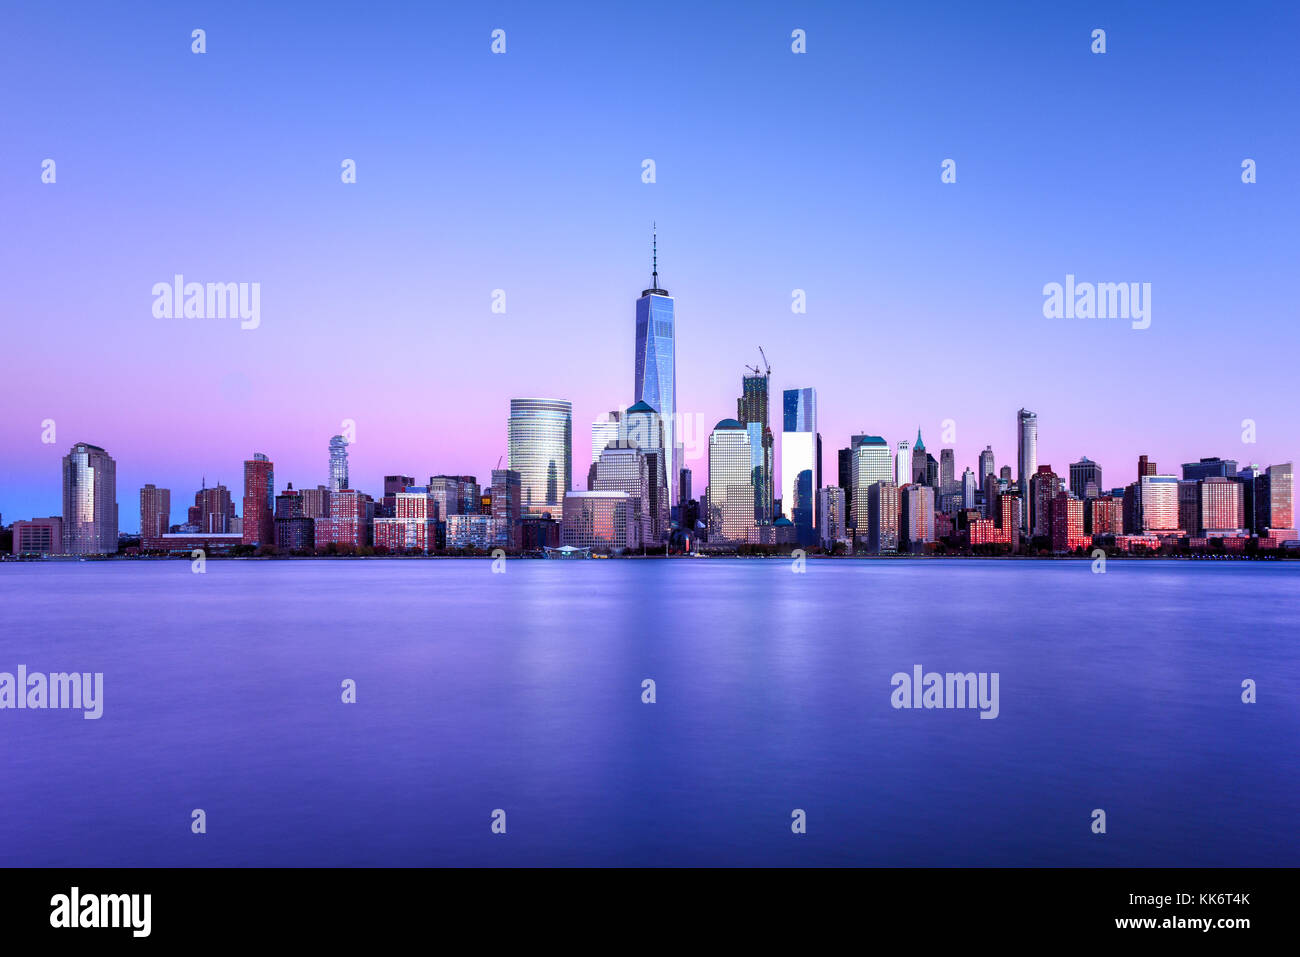 New York skyline as viewed across the Hudson River in New Jersey at sunset. - Stock Image